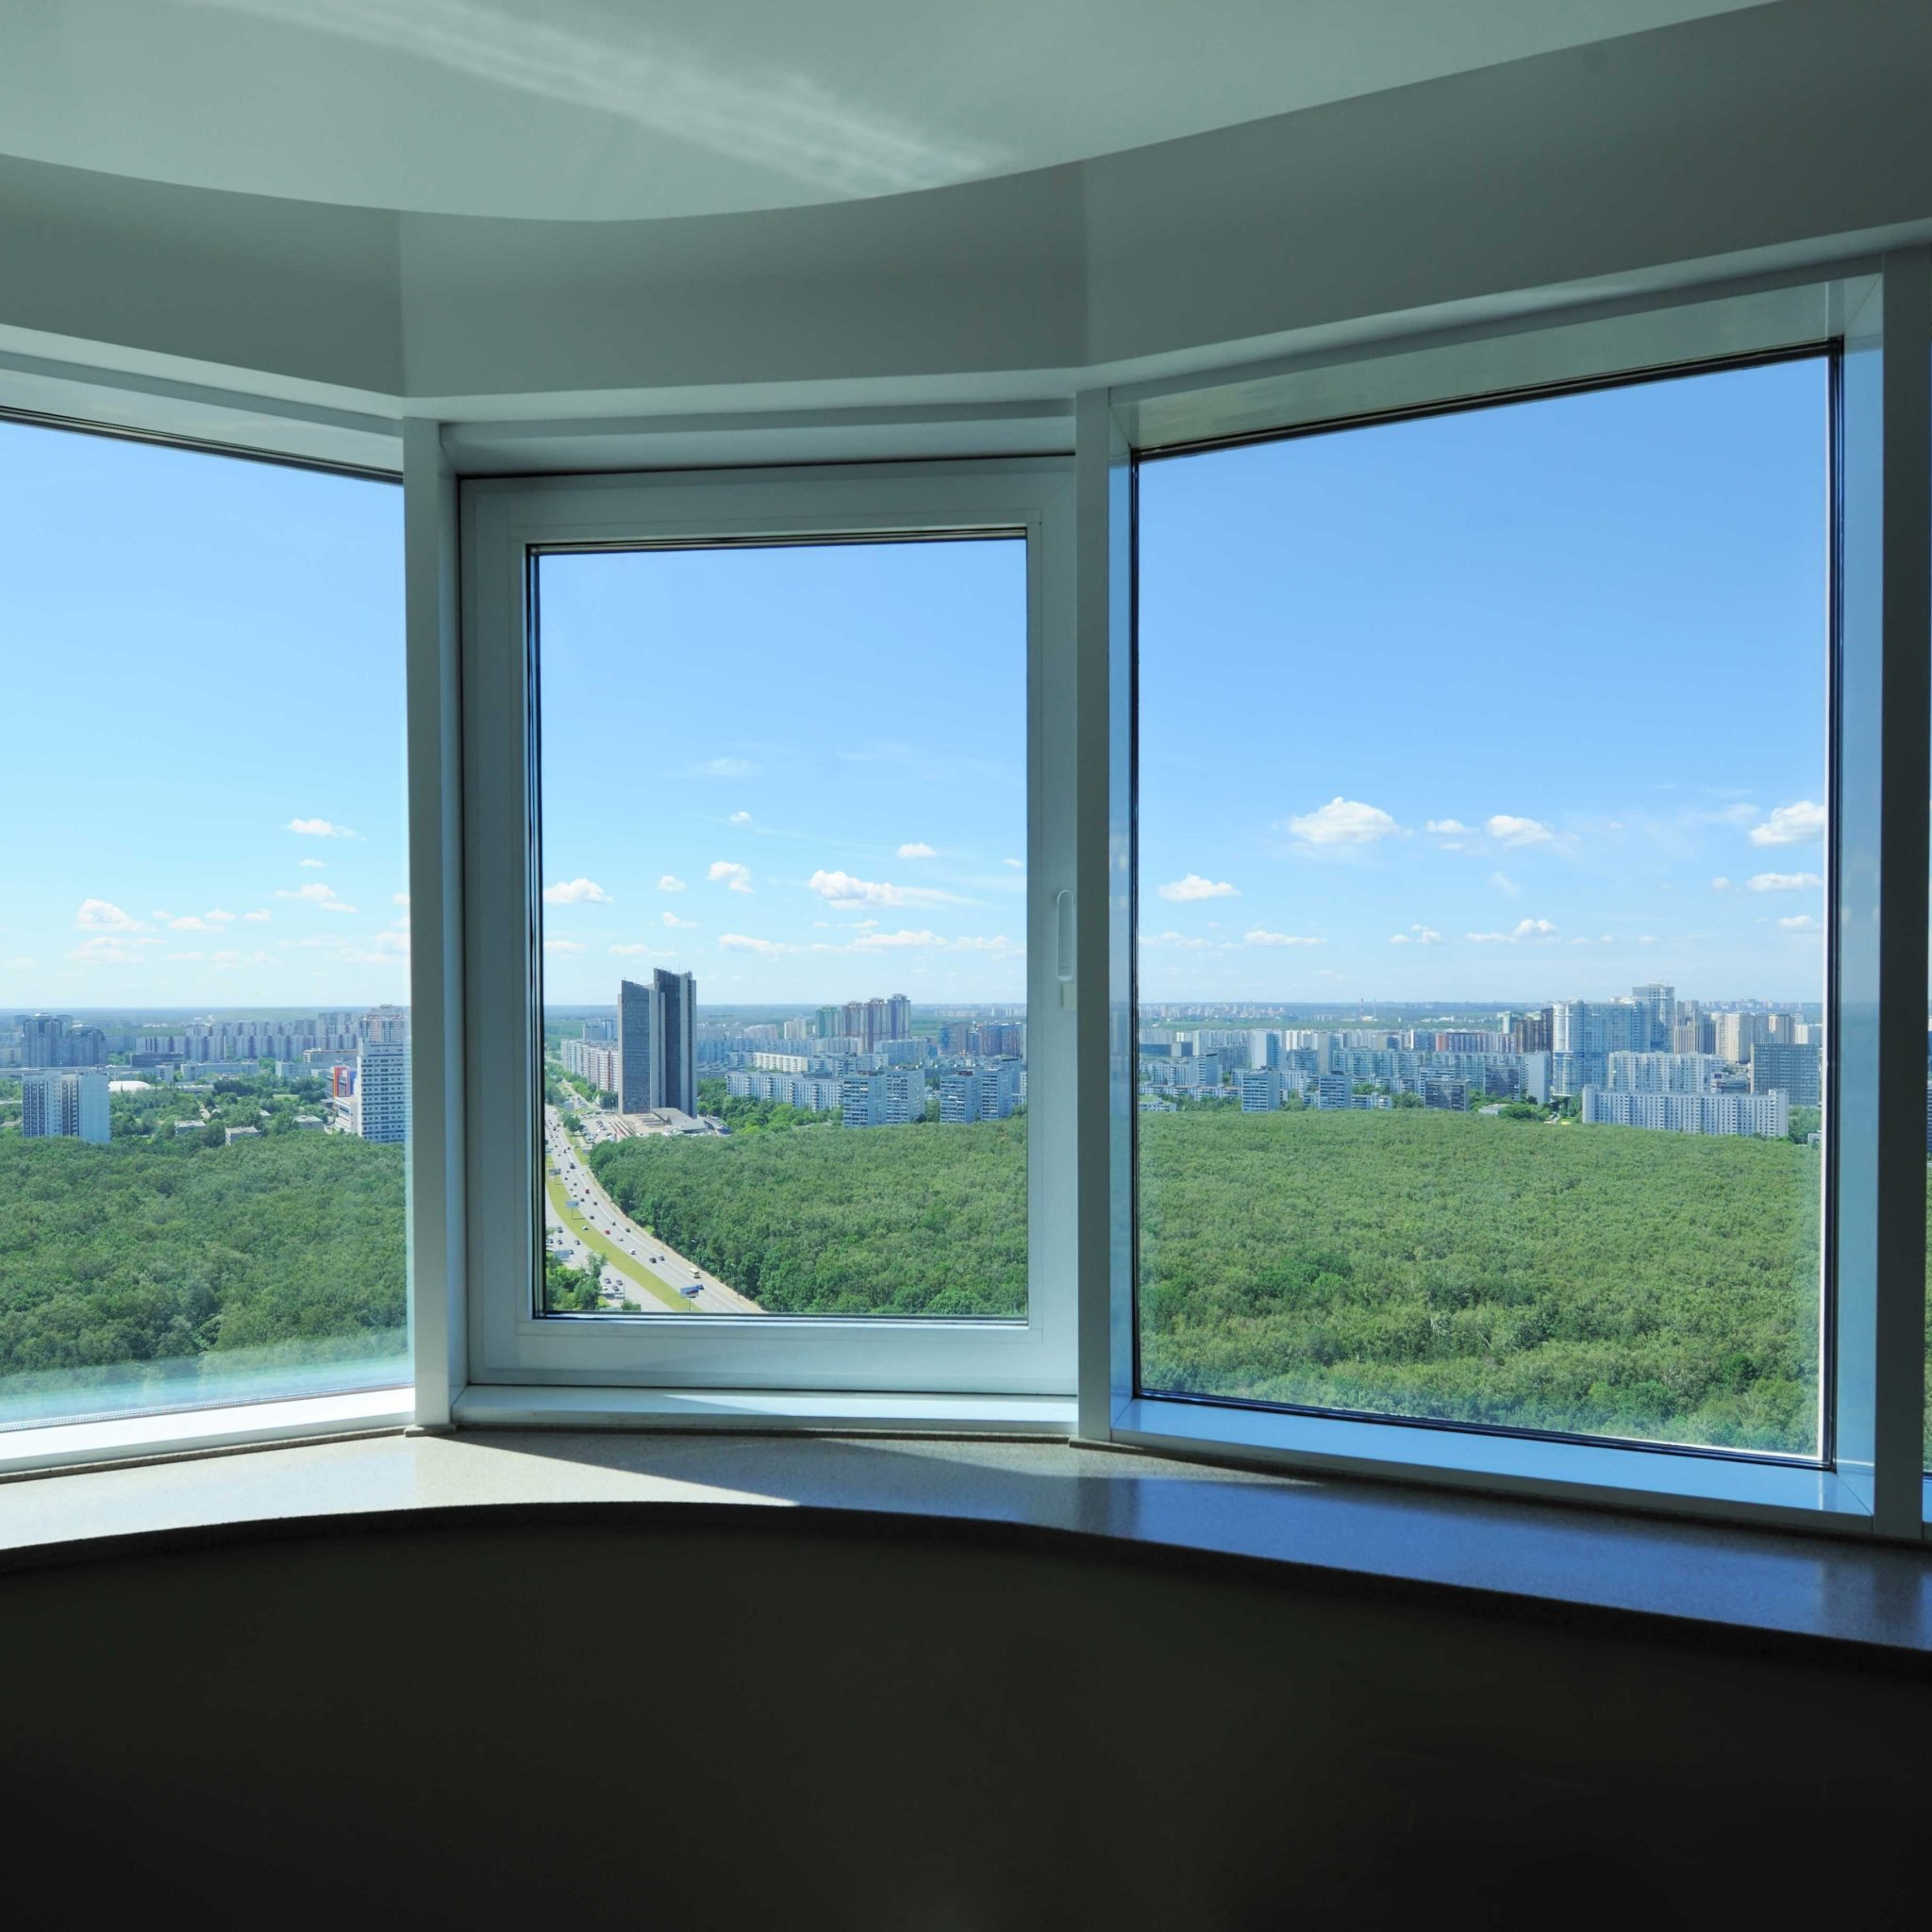 Crystal Clear Window Cleaning Window Cleaning Expertise Fl